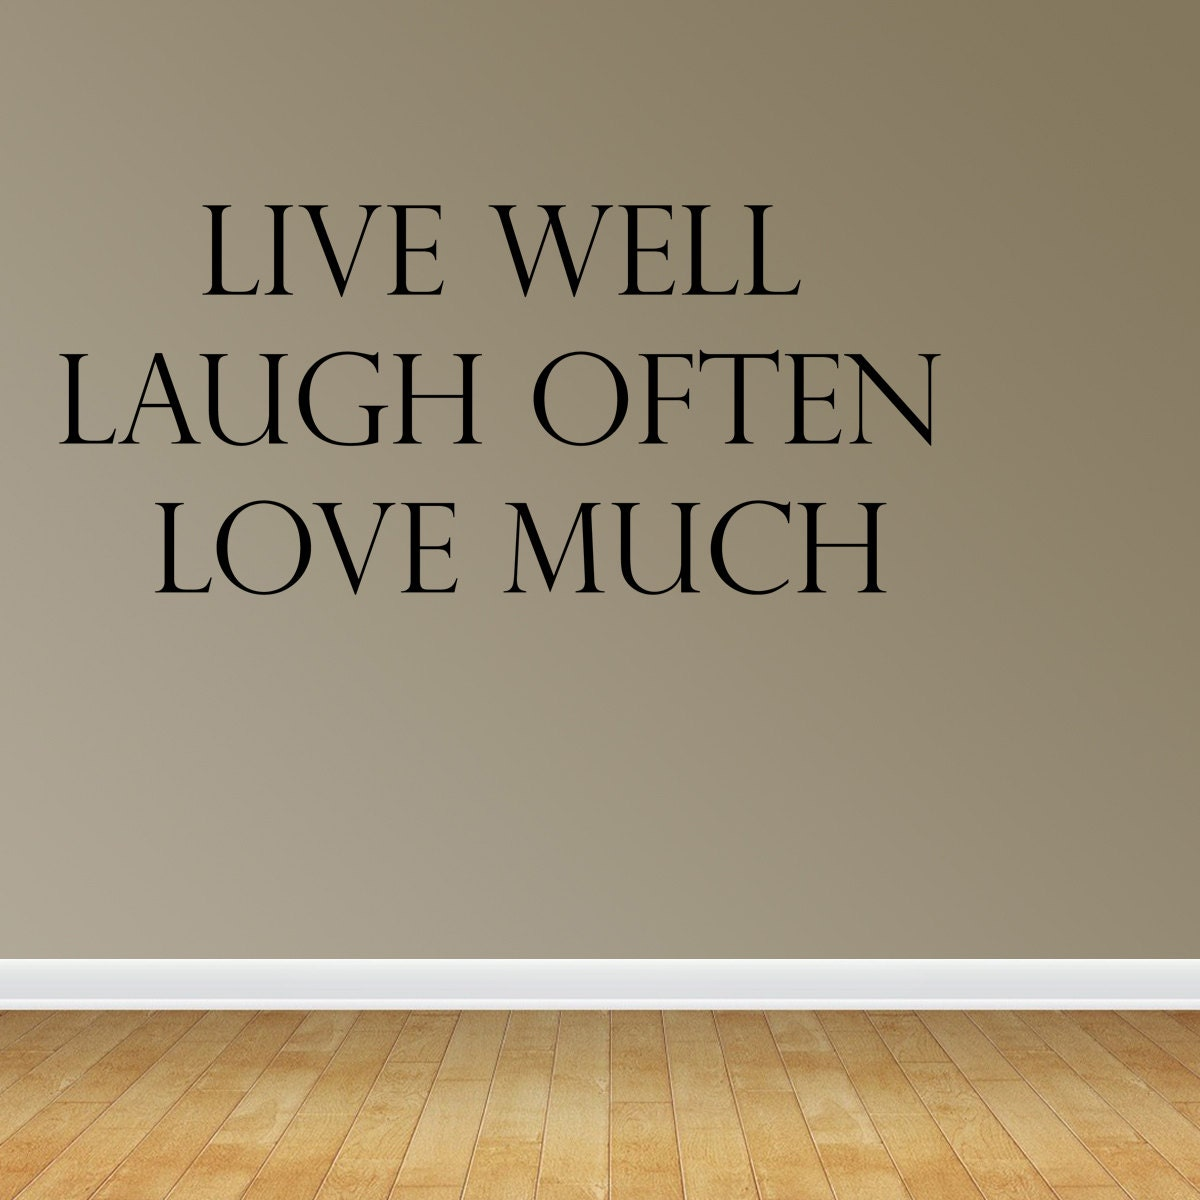 wall decal live well laugh often love much by wallstickersdecals. Black Bedroom Furniture Sets. Home Design Ideas